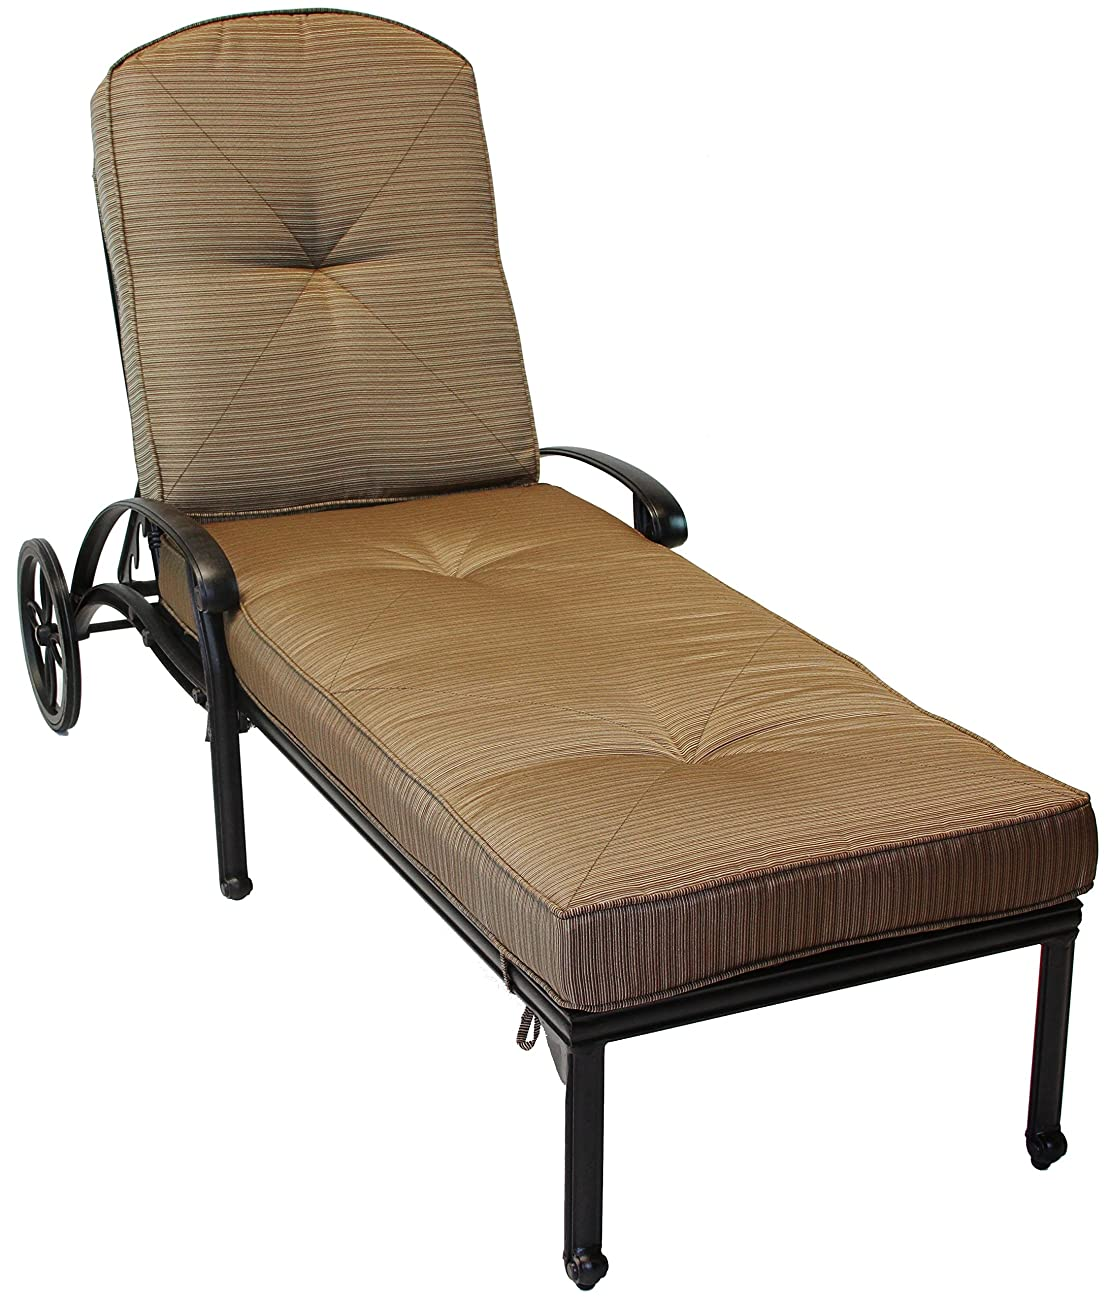 Heritage Outdoor Living Nassau Cast Aluminum Chaise Lounge